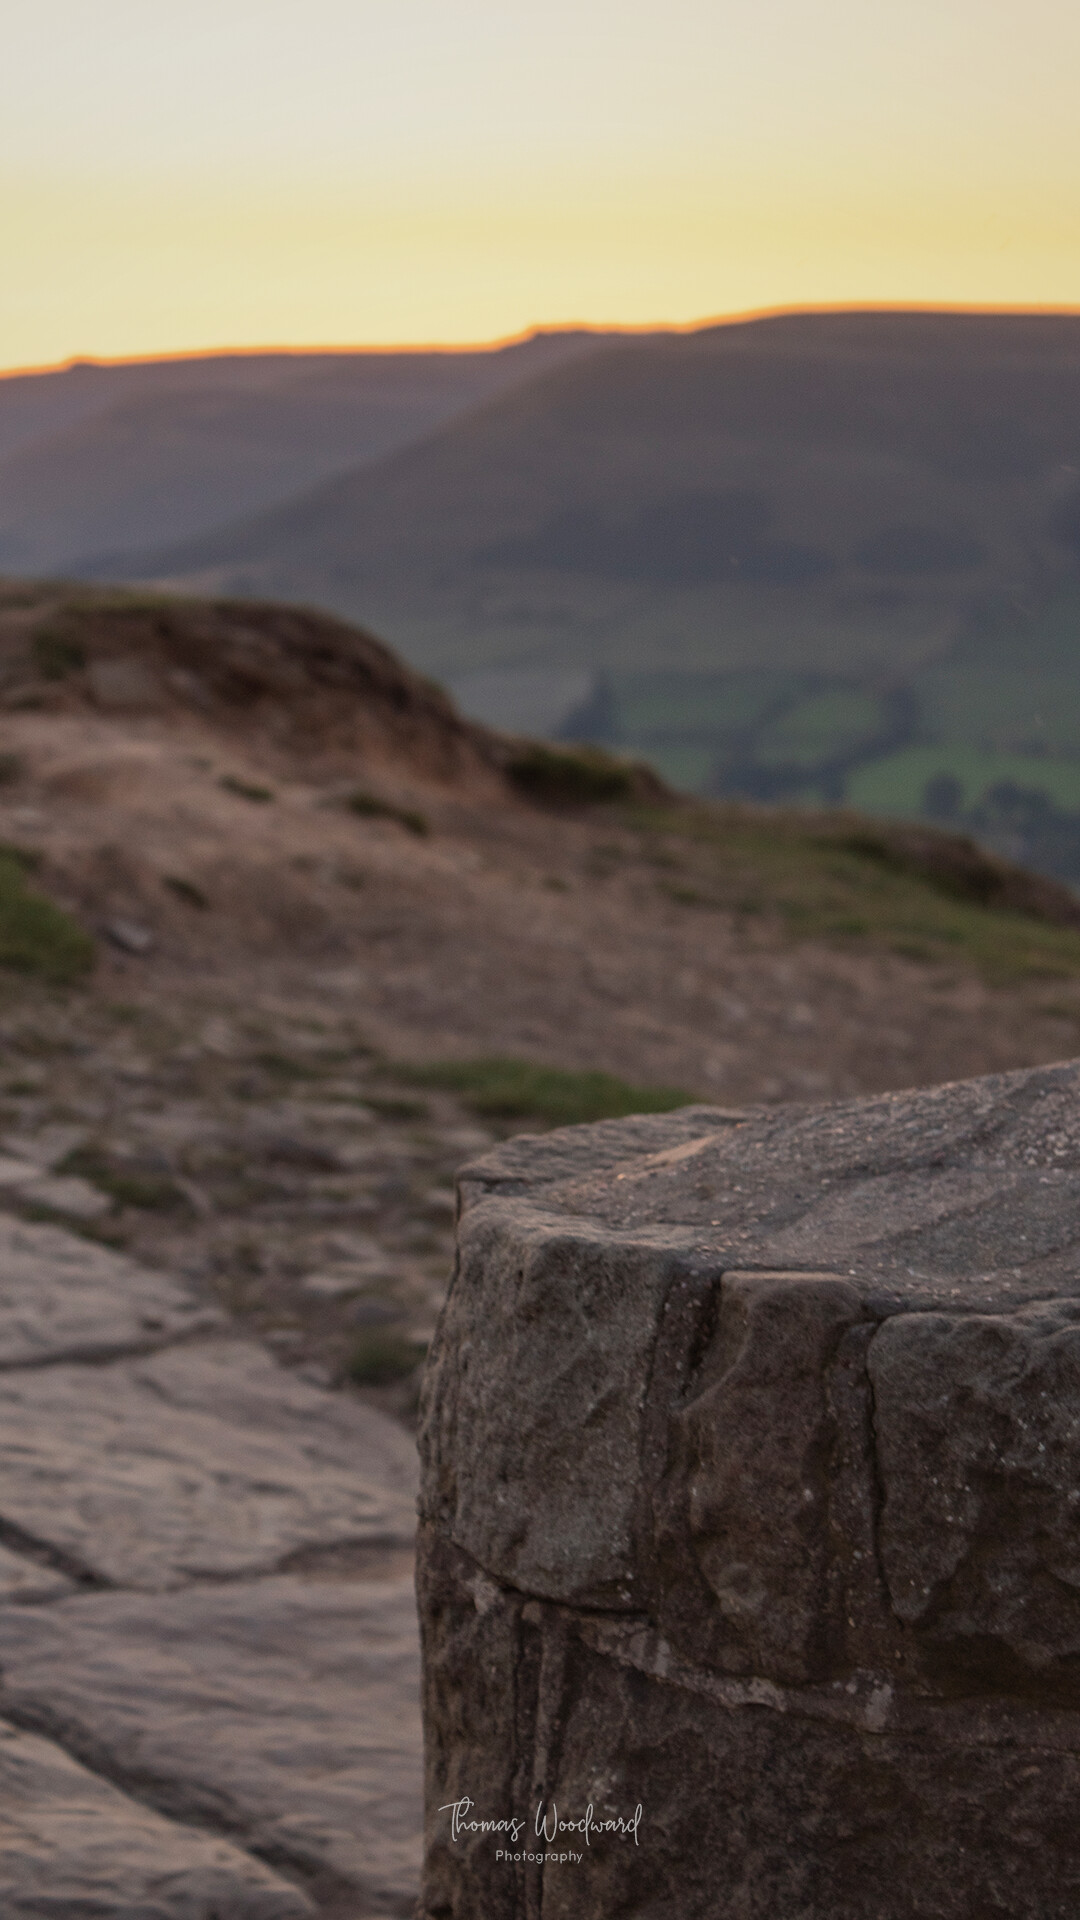 Thomas woodward mam tor evening 7